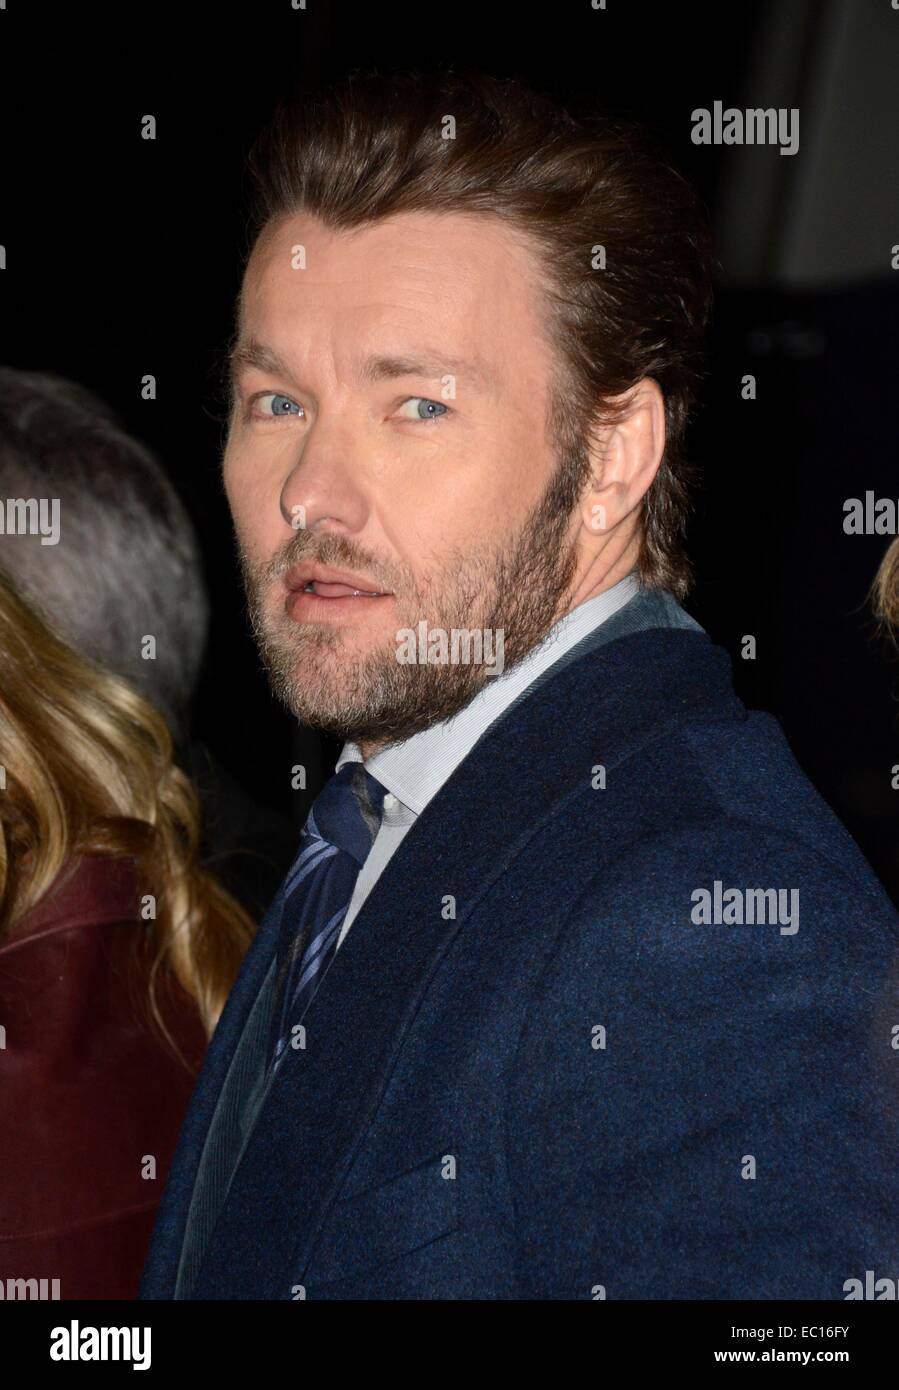 Brooklyn, NY, USA. 7th Dec, 2014. Joel Edgerton at arrivals for EXODUS: GODS AND KINGS Premiere, The Brooklyn Museum, - Stock Image